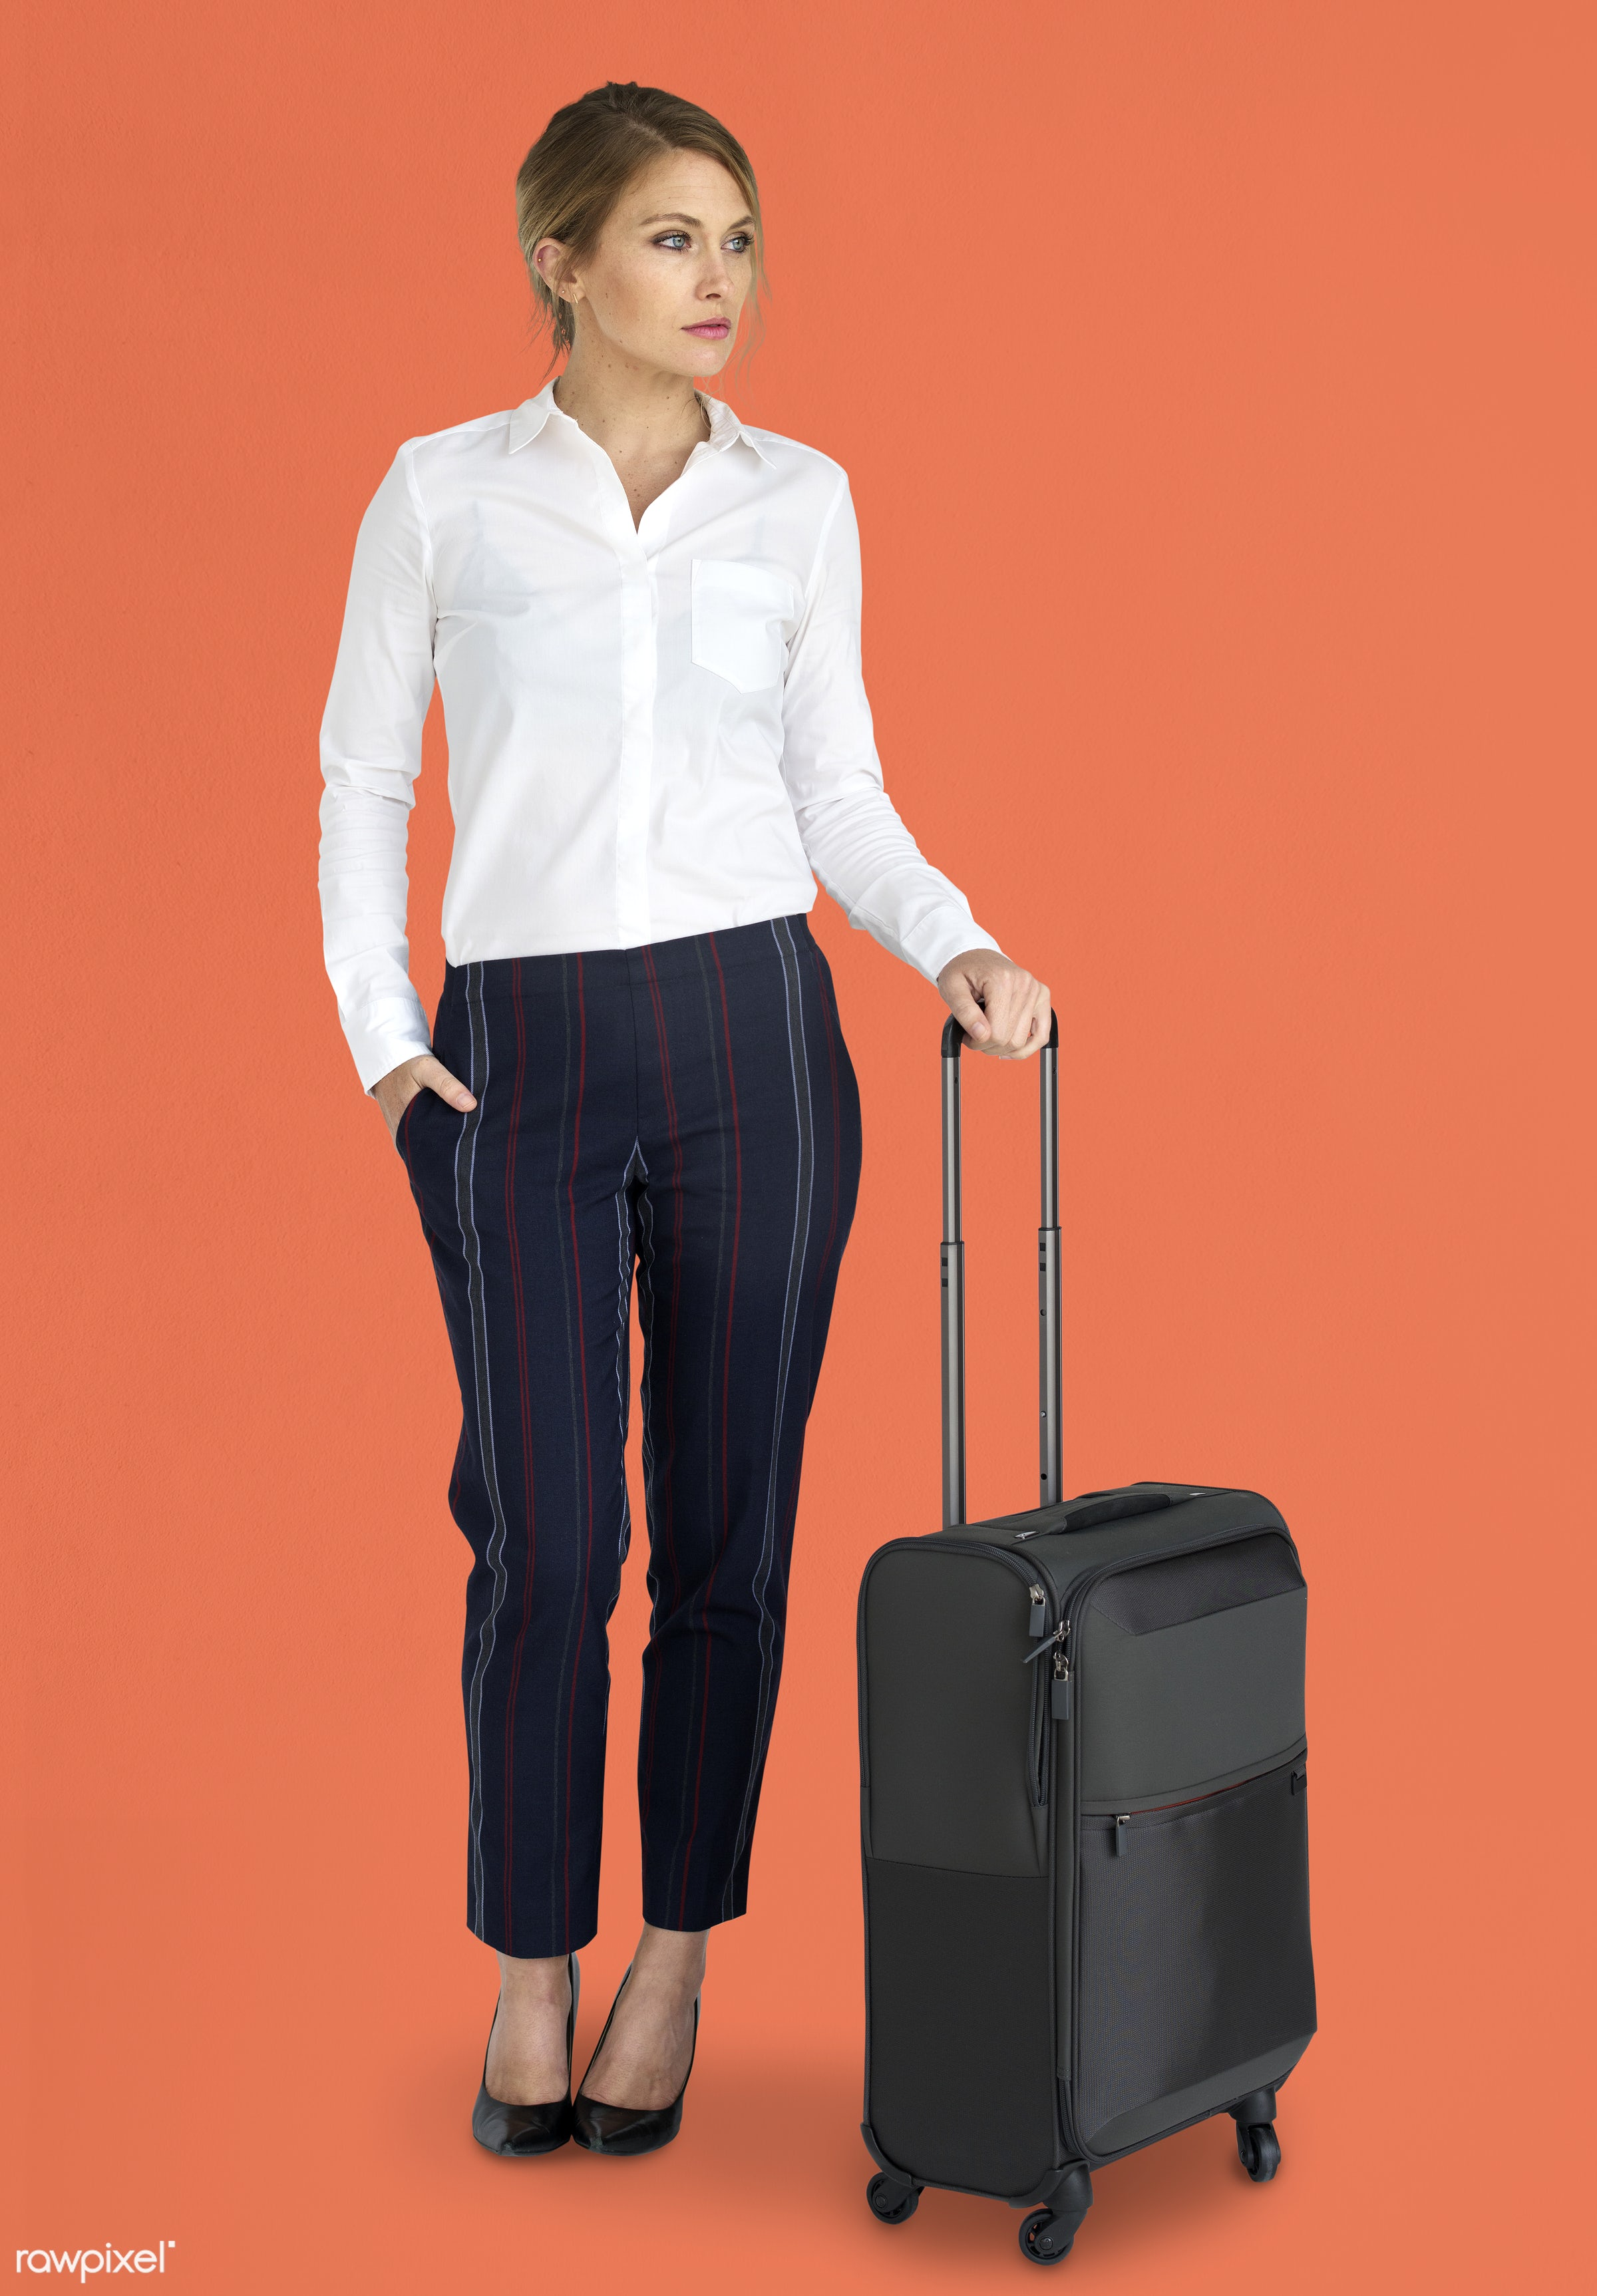 studio, face, person, travel, people, business, trip, man, orange, isolated, suitcase, male, traveler, businesswoman,...